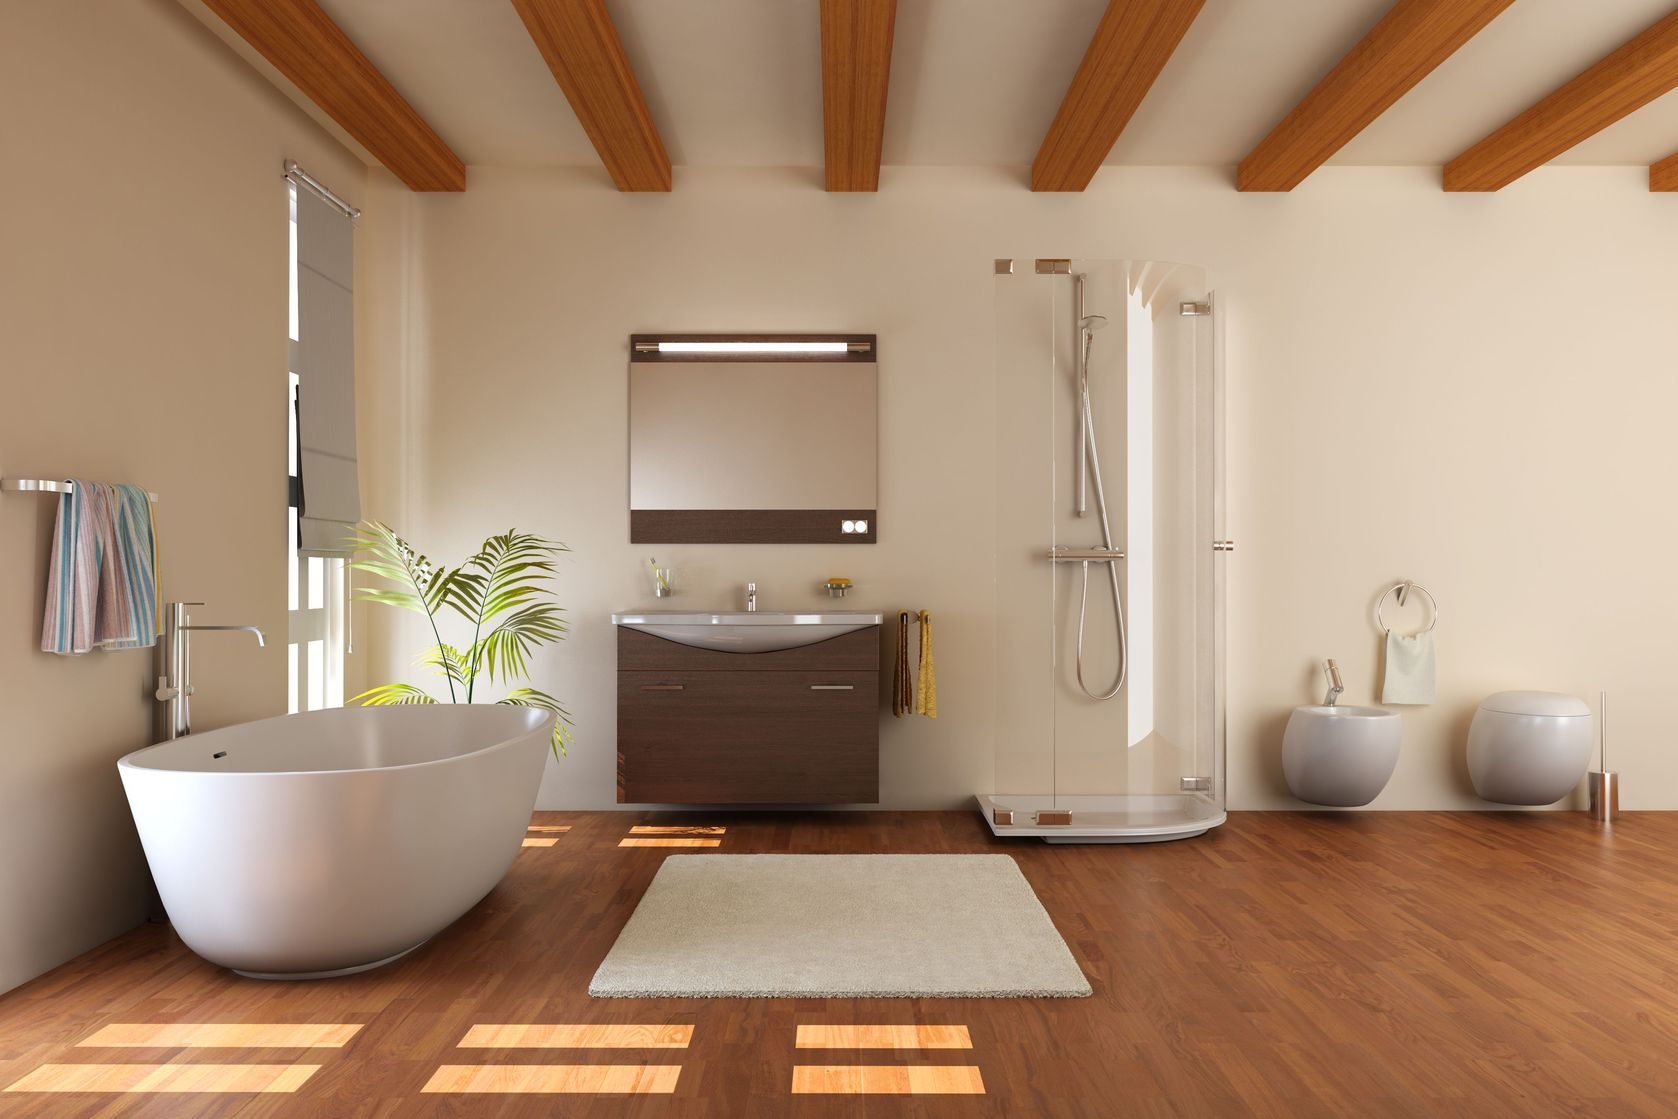 Bathroom Trends to Look Forward to in 2017